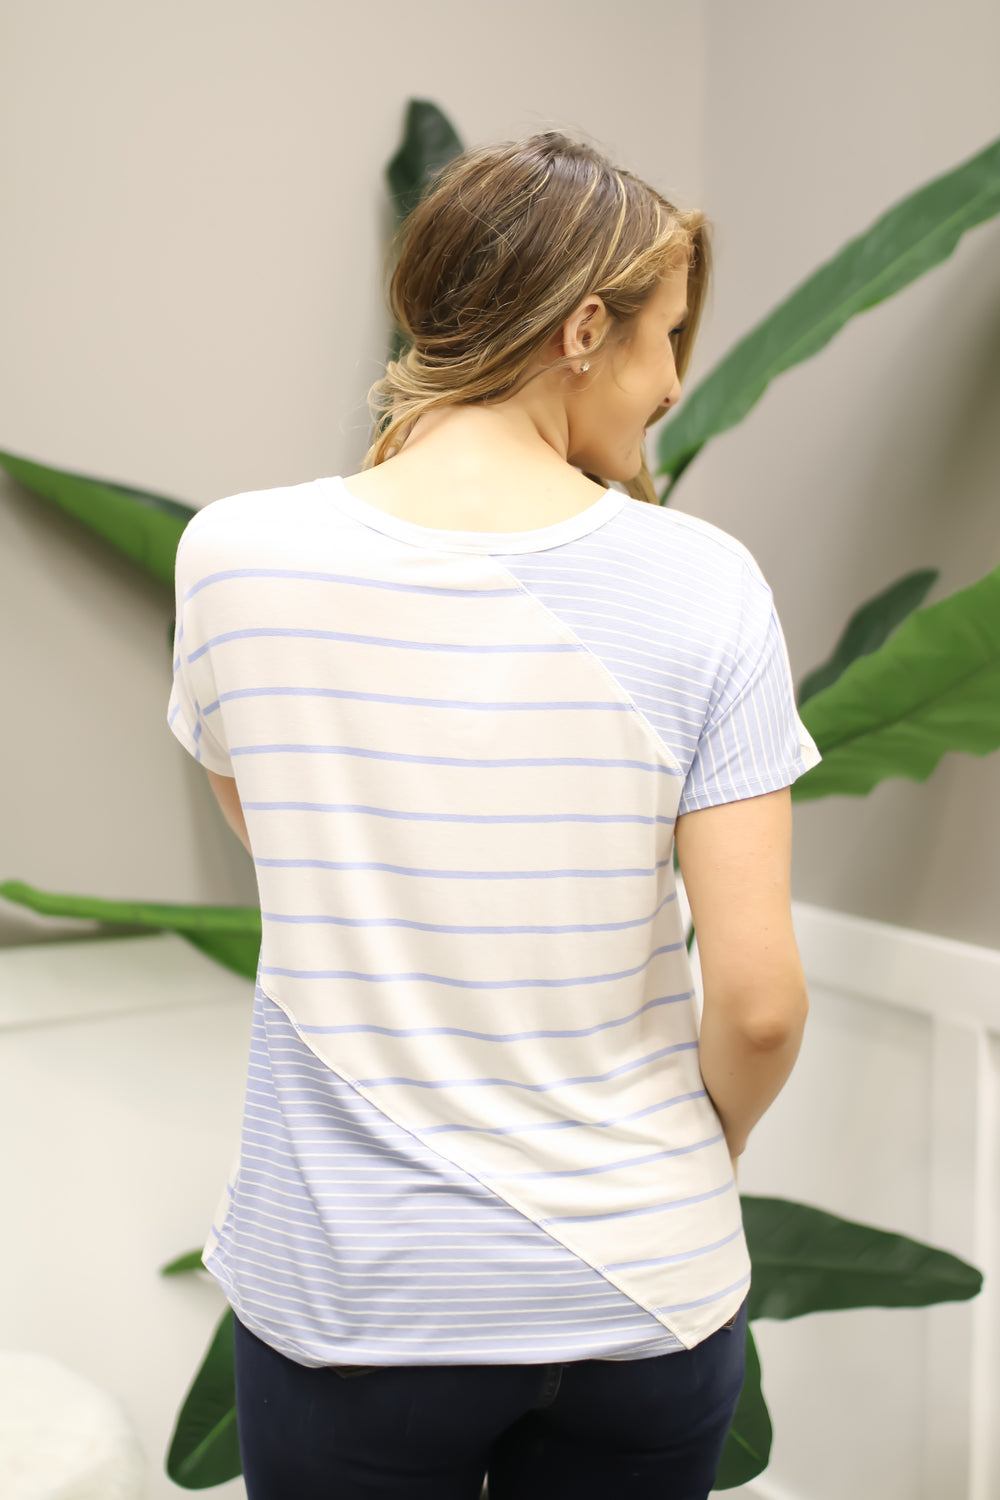 Just My Stripe Top - Blue